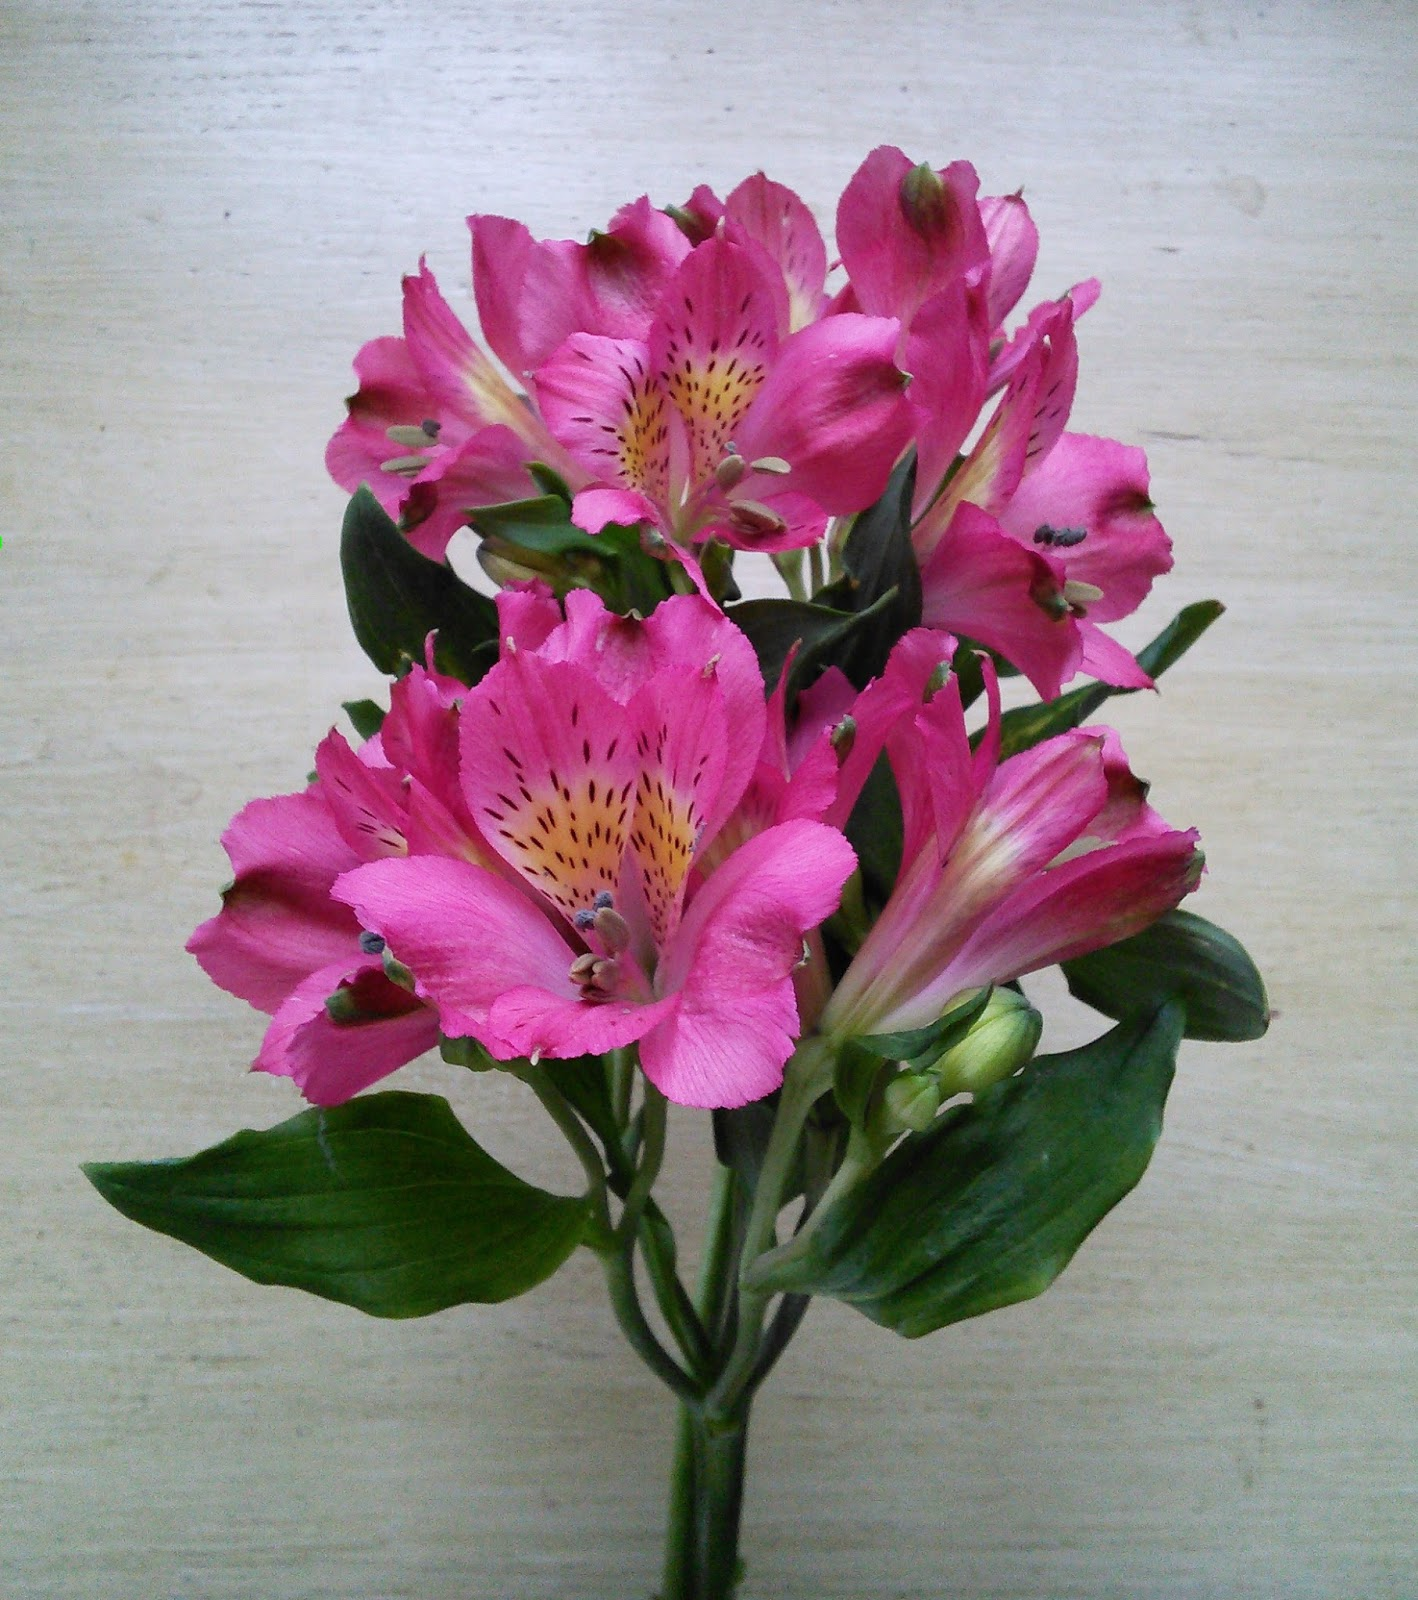 In the garden alstreomeria peruvian lily alstroemeria peruvian lily is a really pretty flower that grows wild in south america the native flowers are usually yellow or orange but the hybrids mightylinksfo